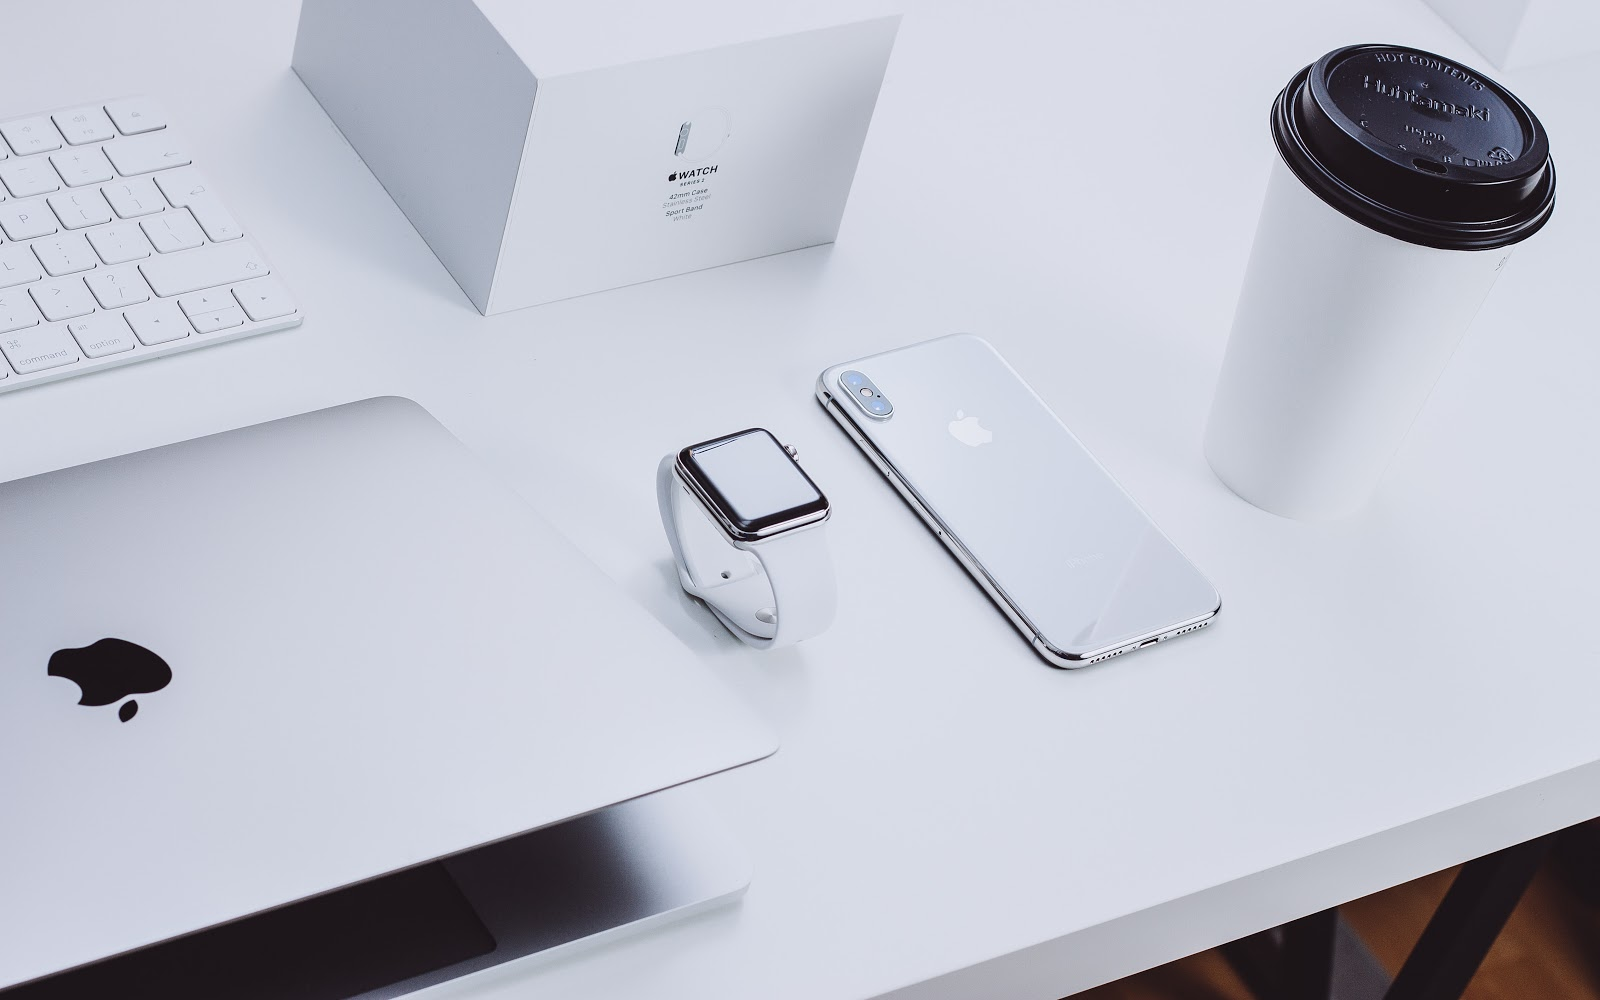 Apple products on a white desk.